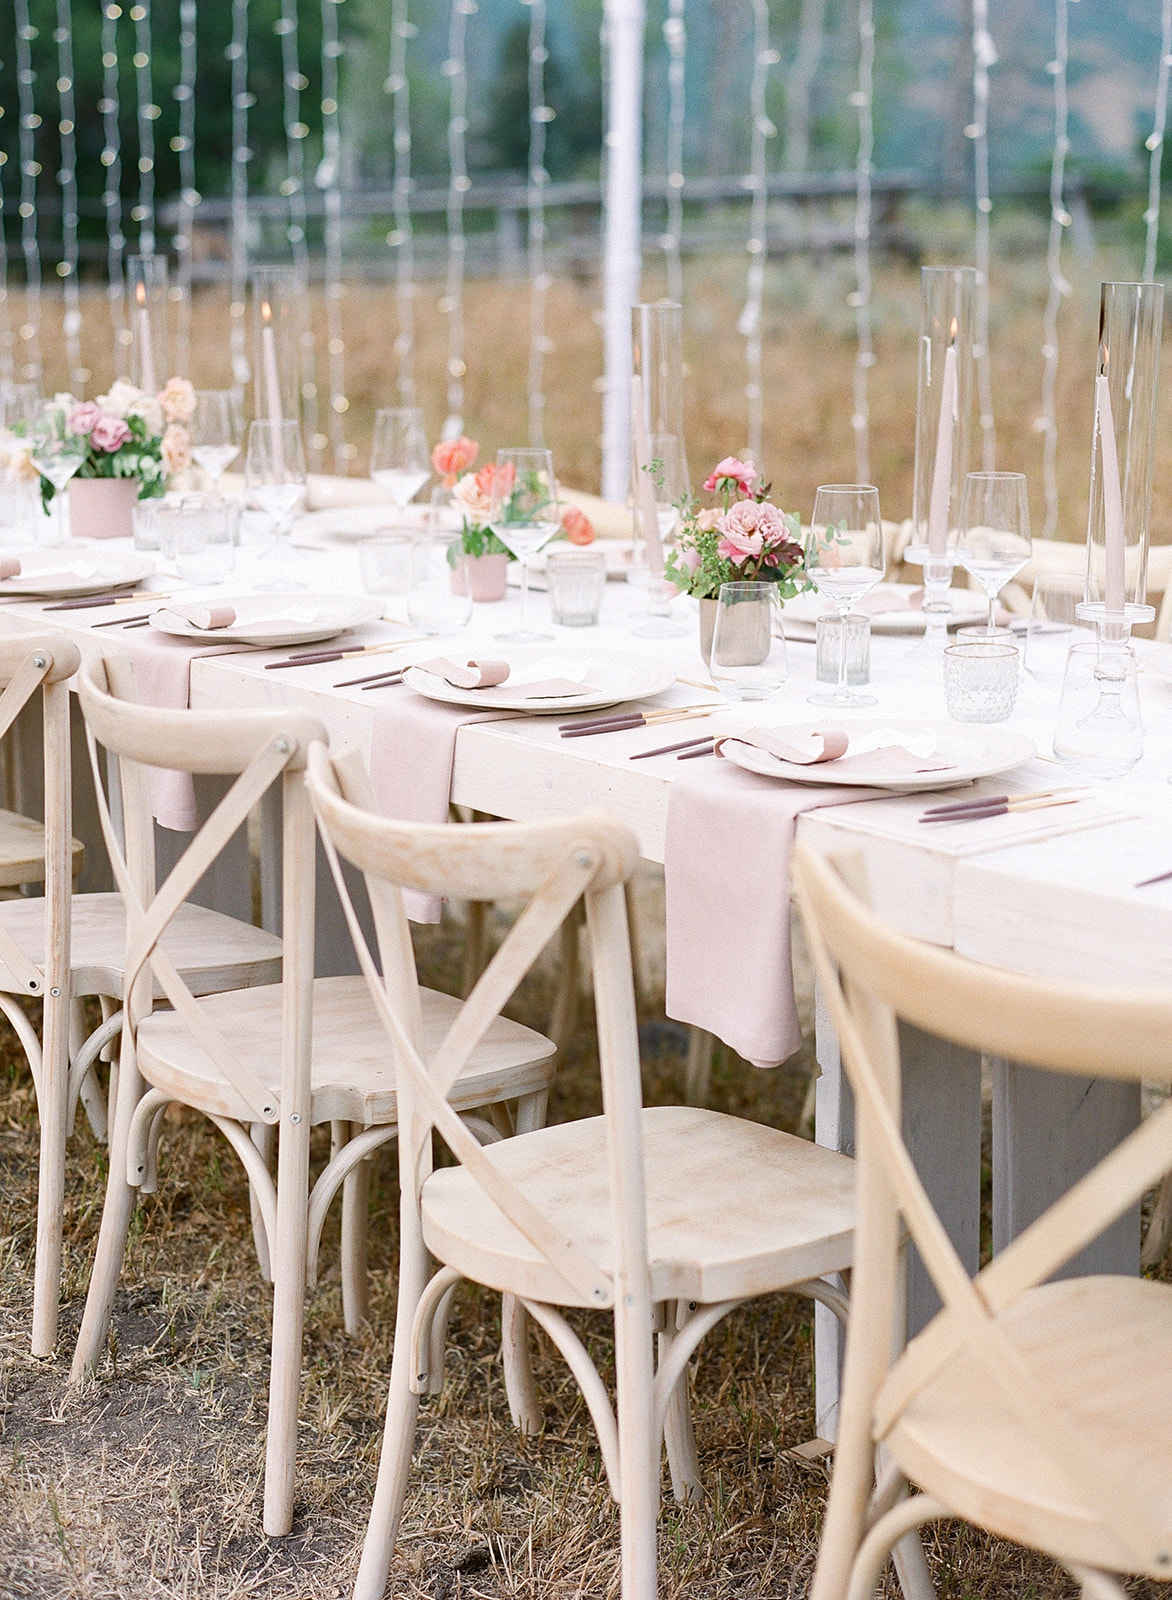 Rustic Table Settings at Summer Wedding in the Utah Mountains